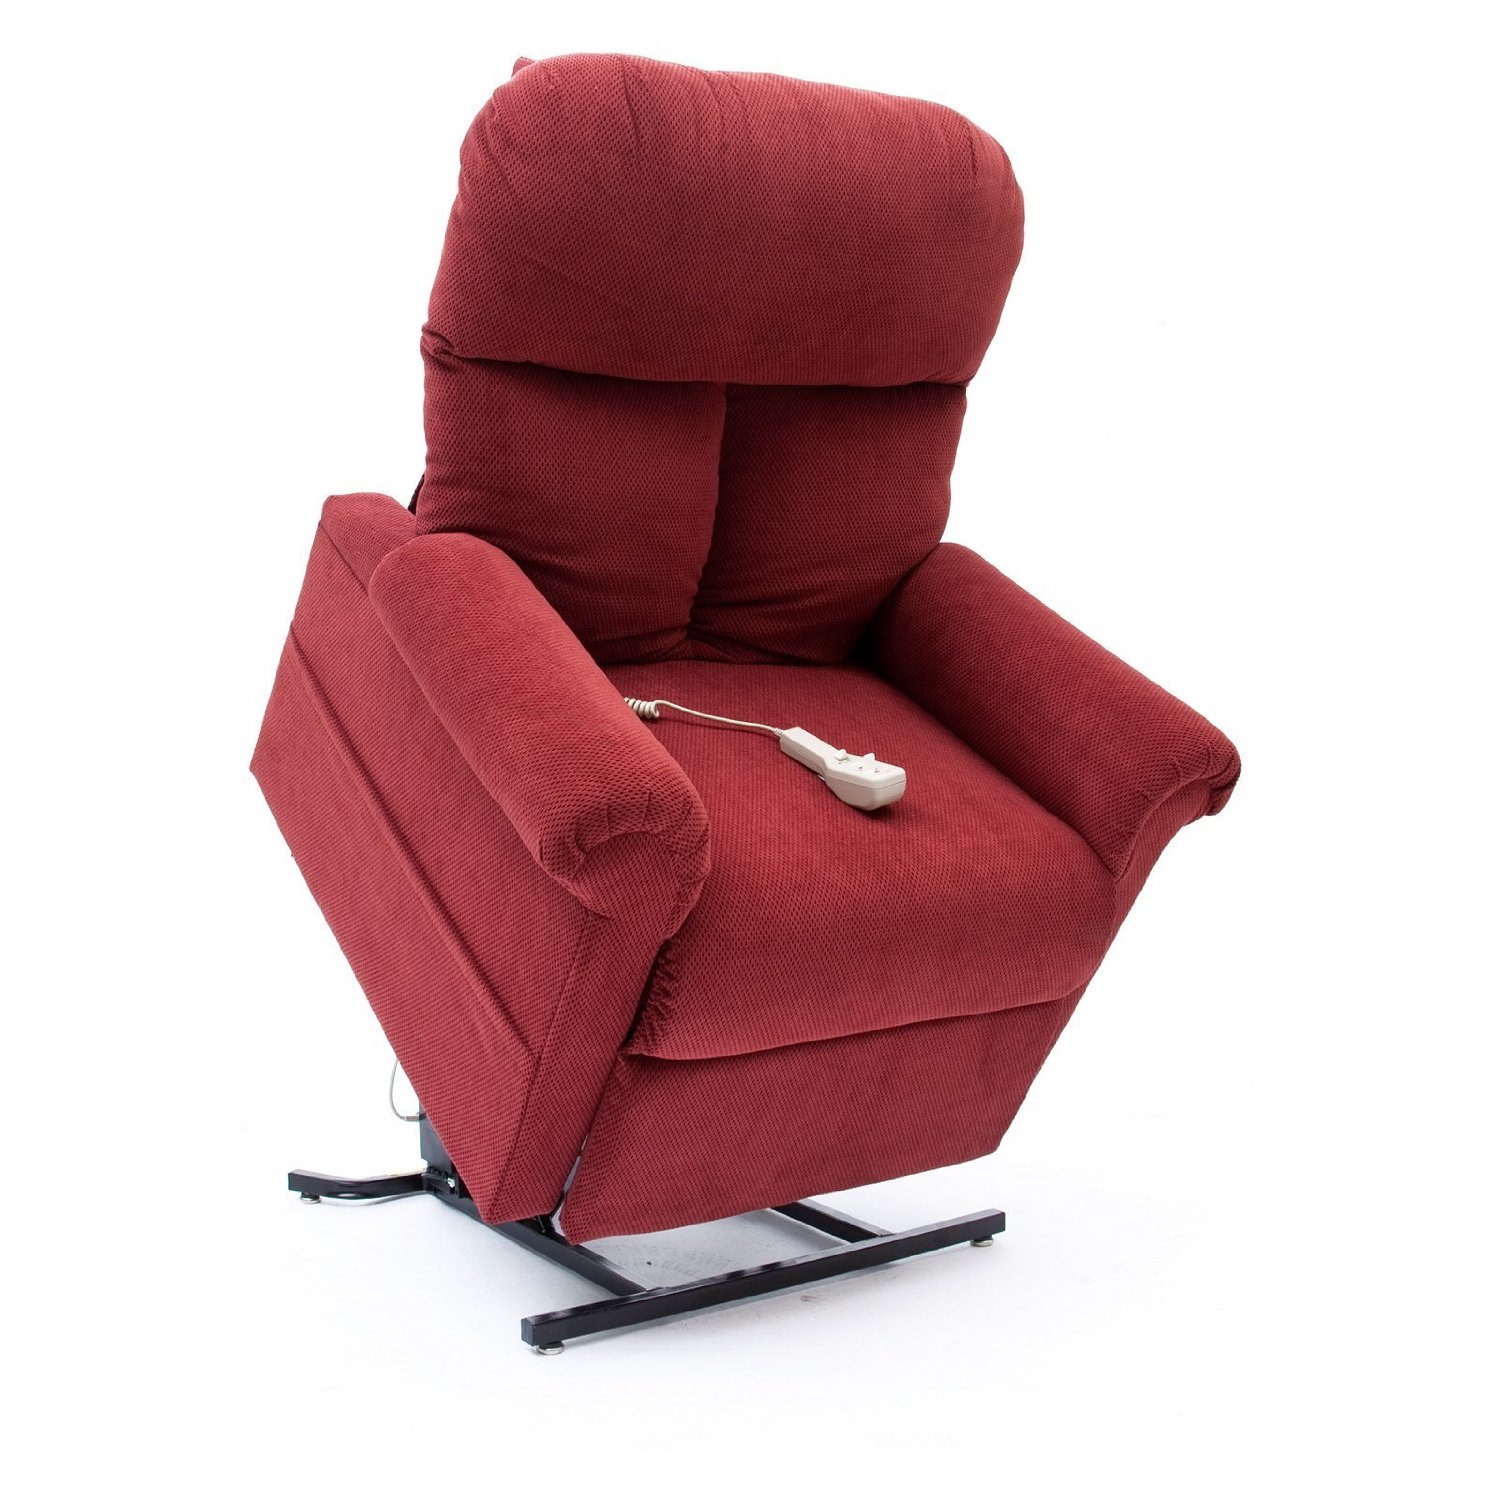 New Brandy Red Fabric Easy Comfort Lc 100 Power Lift Chair